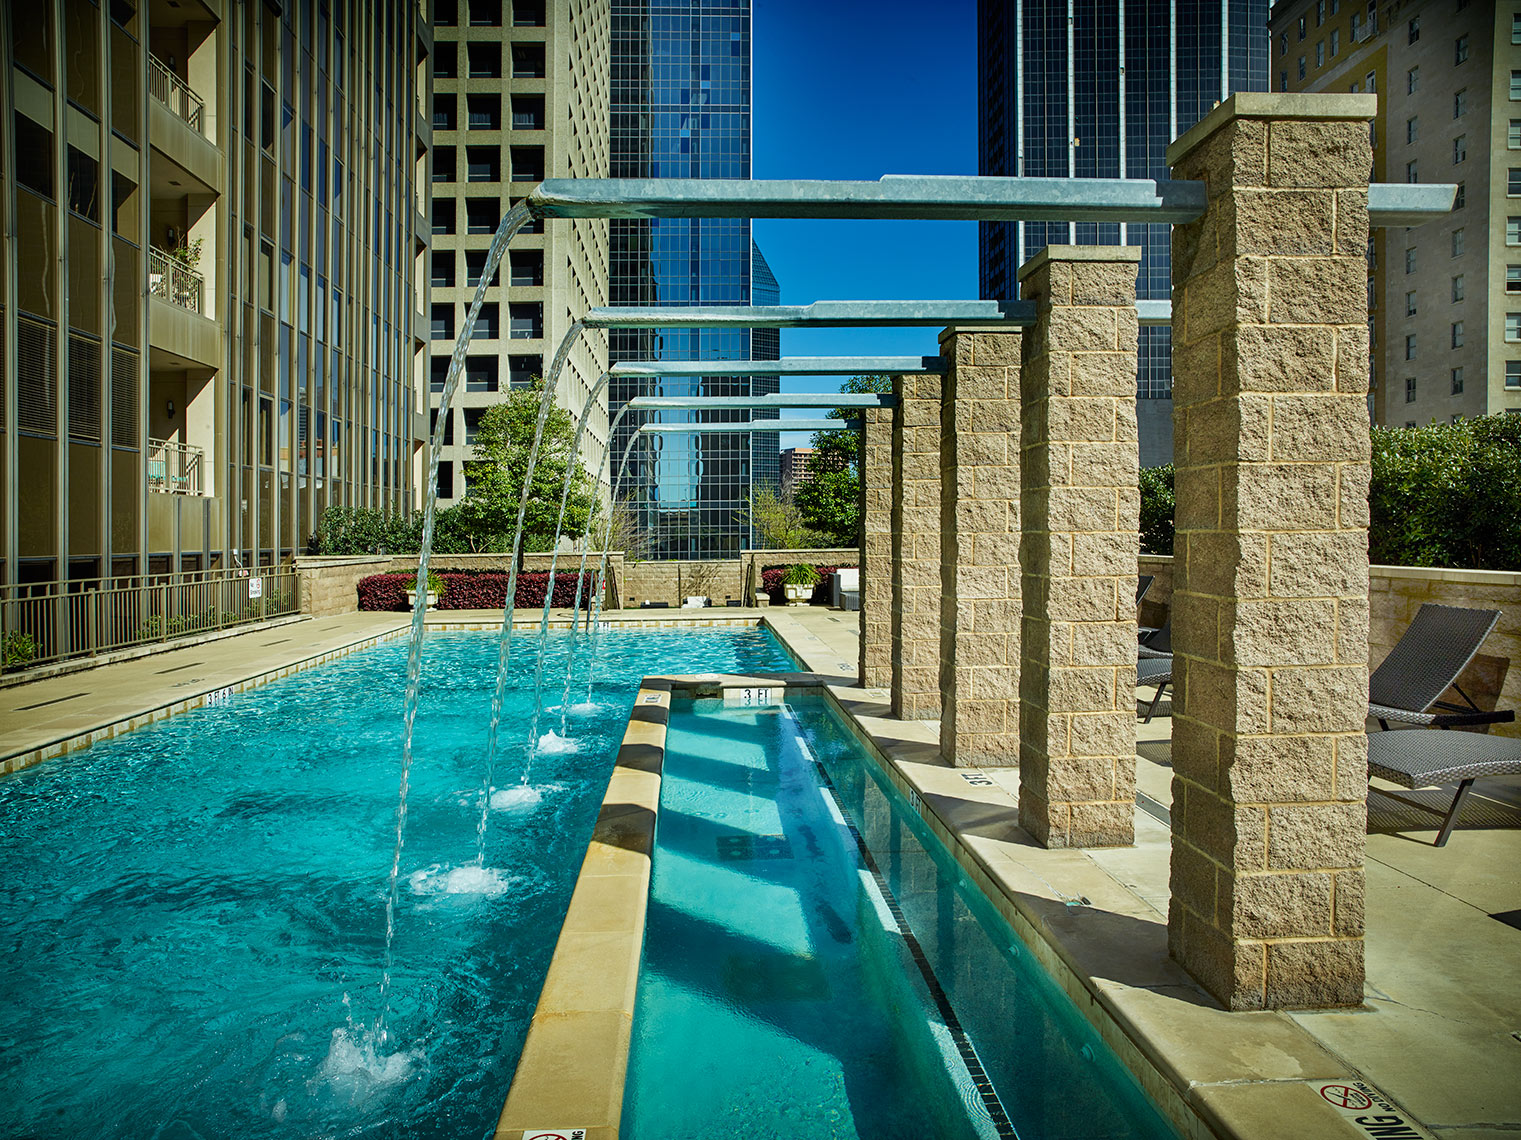 swimming pools and recreation at urban living centers